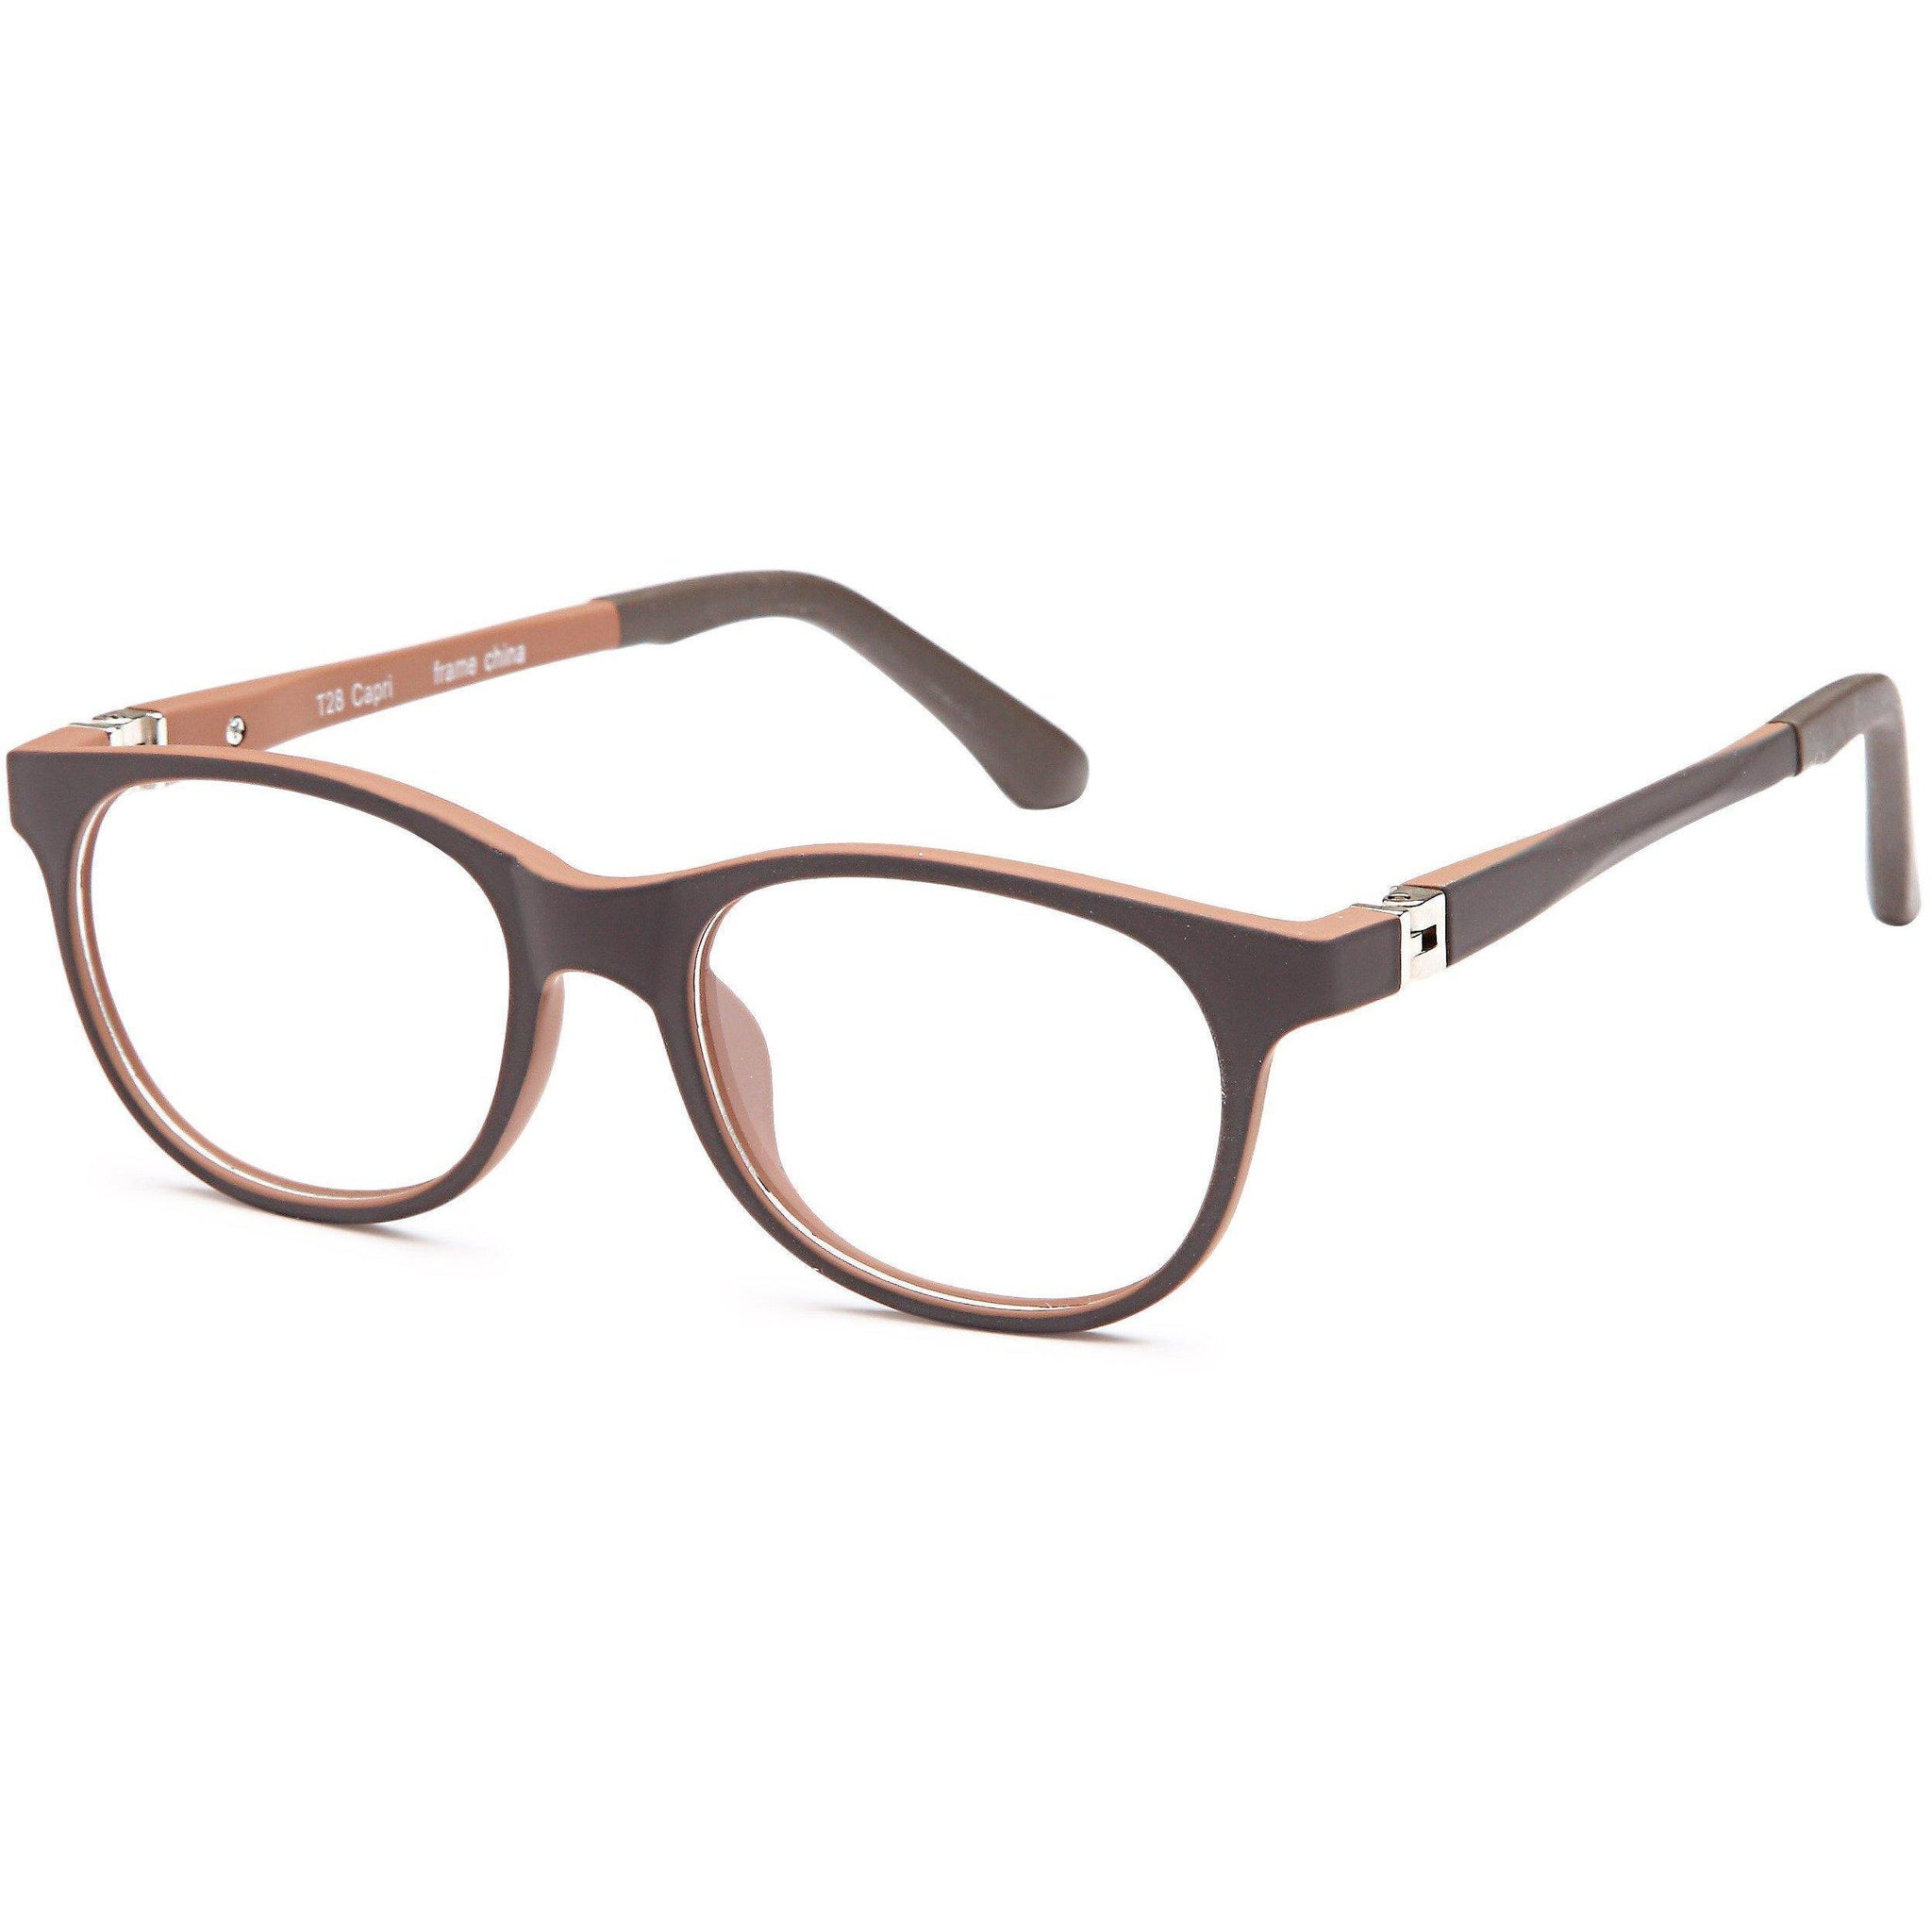 OnTrend Prescription Glasses T 28 Eyeglasses Frames